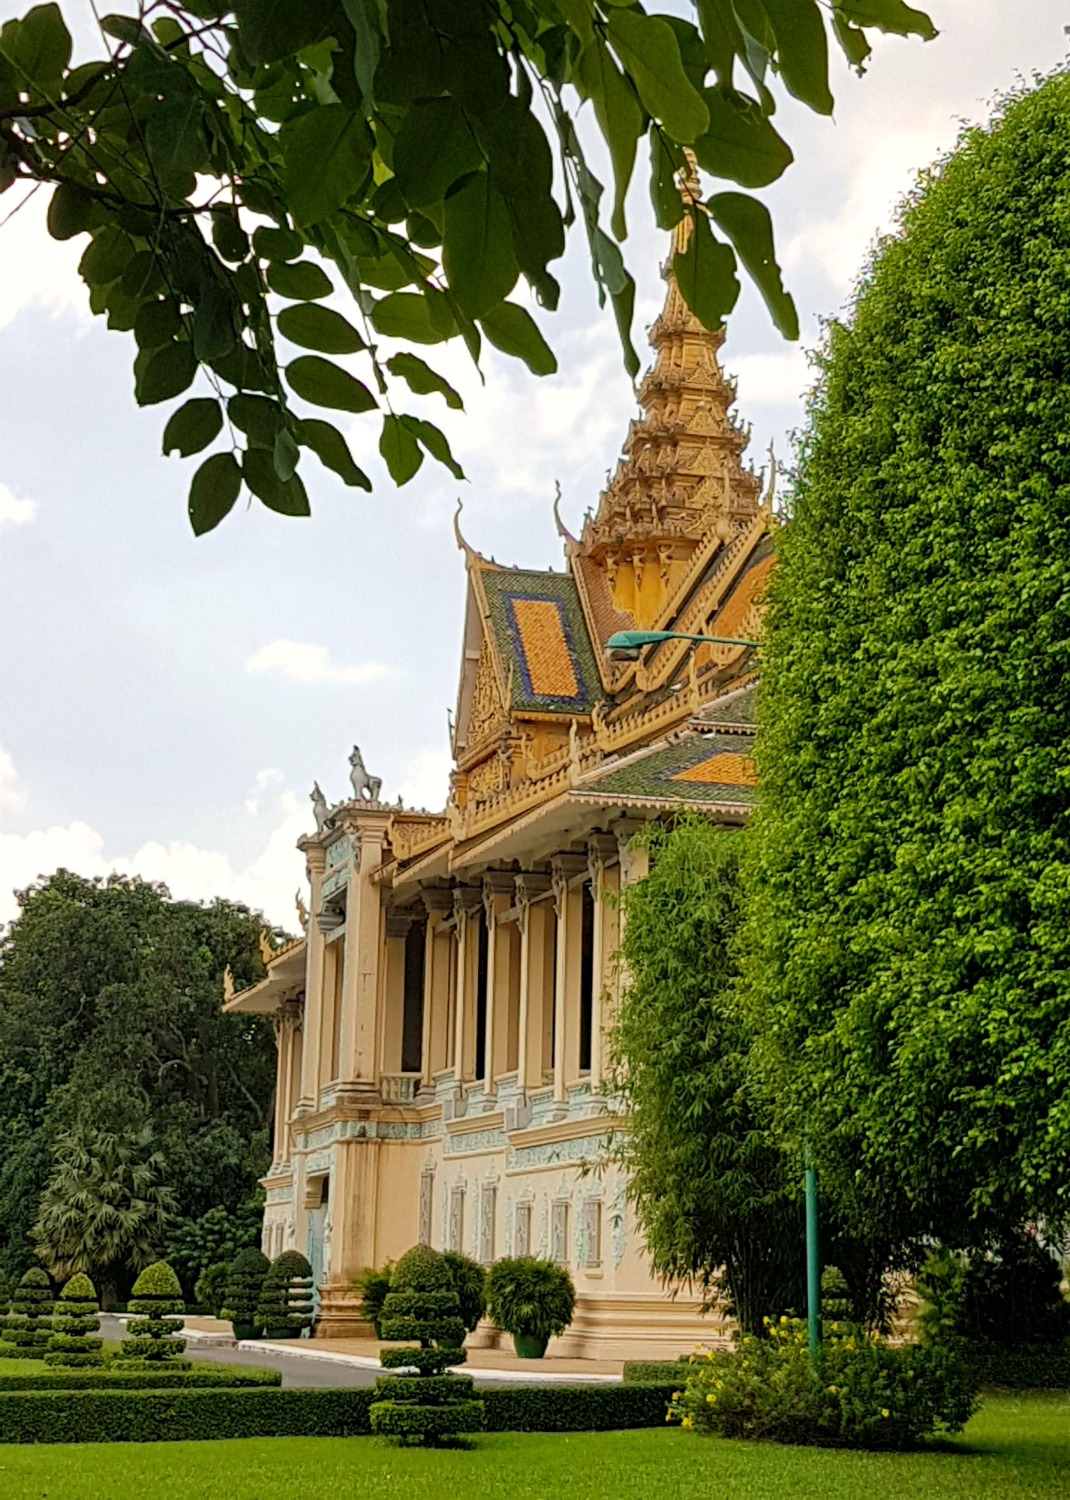 Gold roofed building in the grounds of the royal palace at Phnom Penh - 12 reasons to visit Cambodia with kids